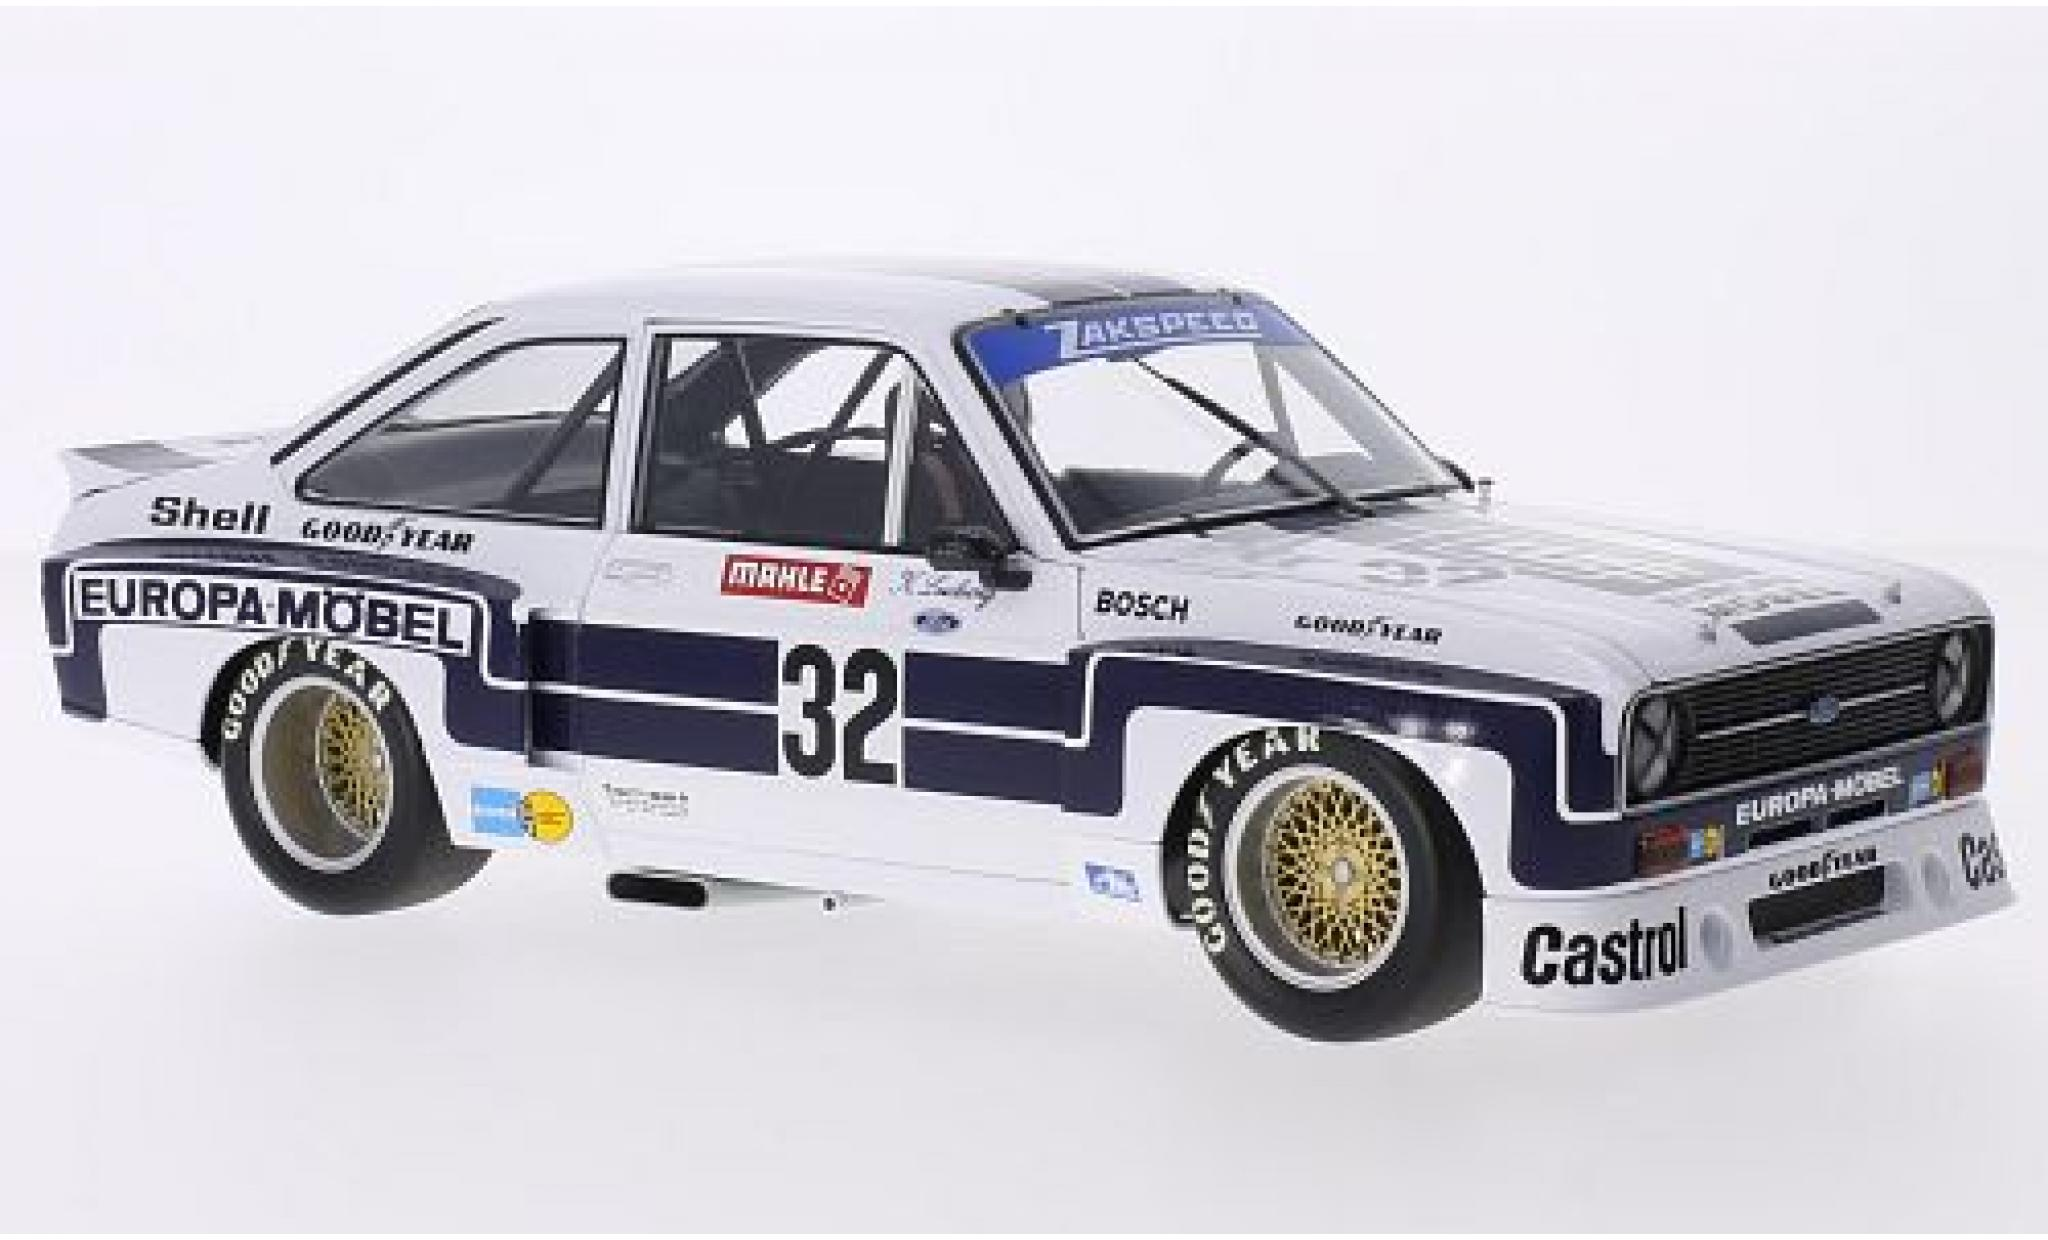 Diecast Model Cars Ford Escort 1 18 Minichamps Ii Rs 1800 No 32 Europa Möbel Drm Nürburgring 1976 K Ludwig Alldiecast Us